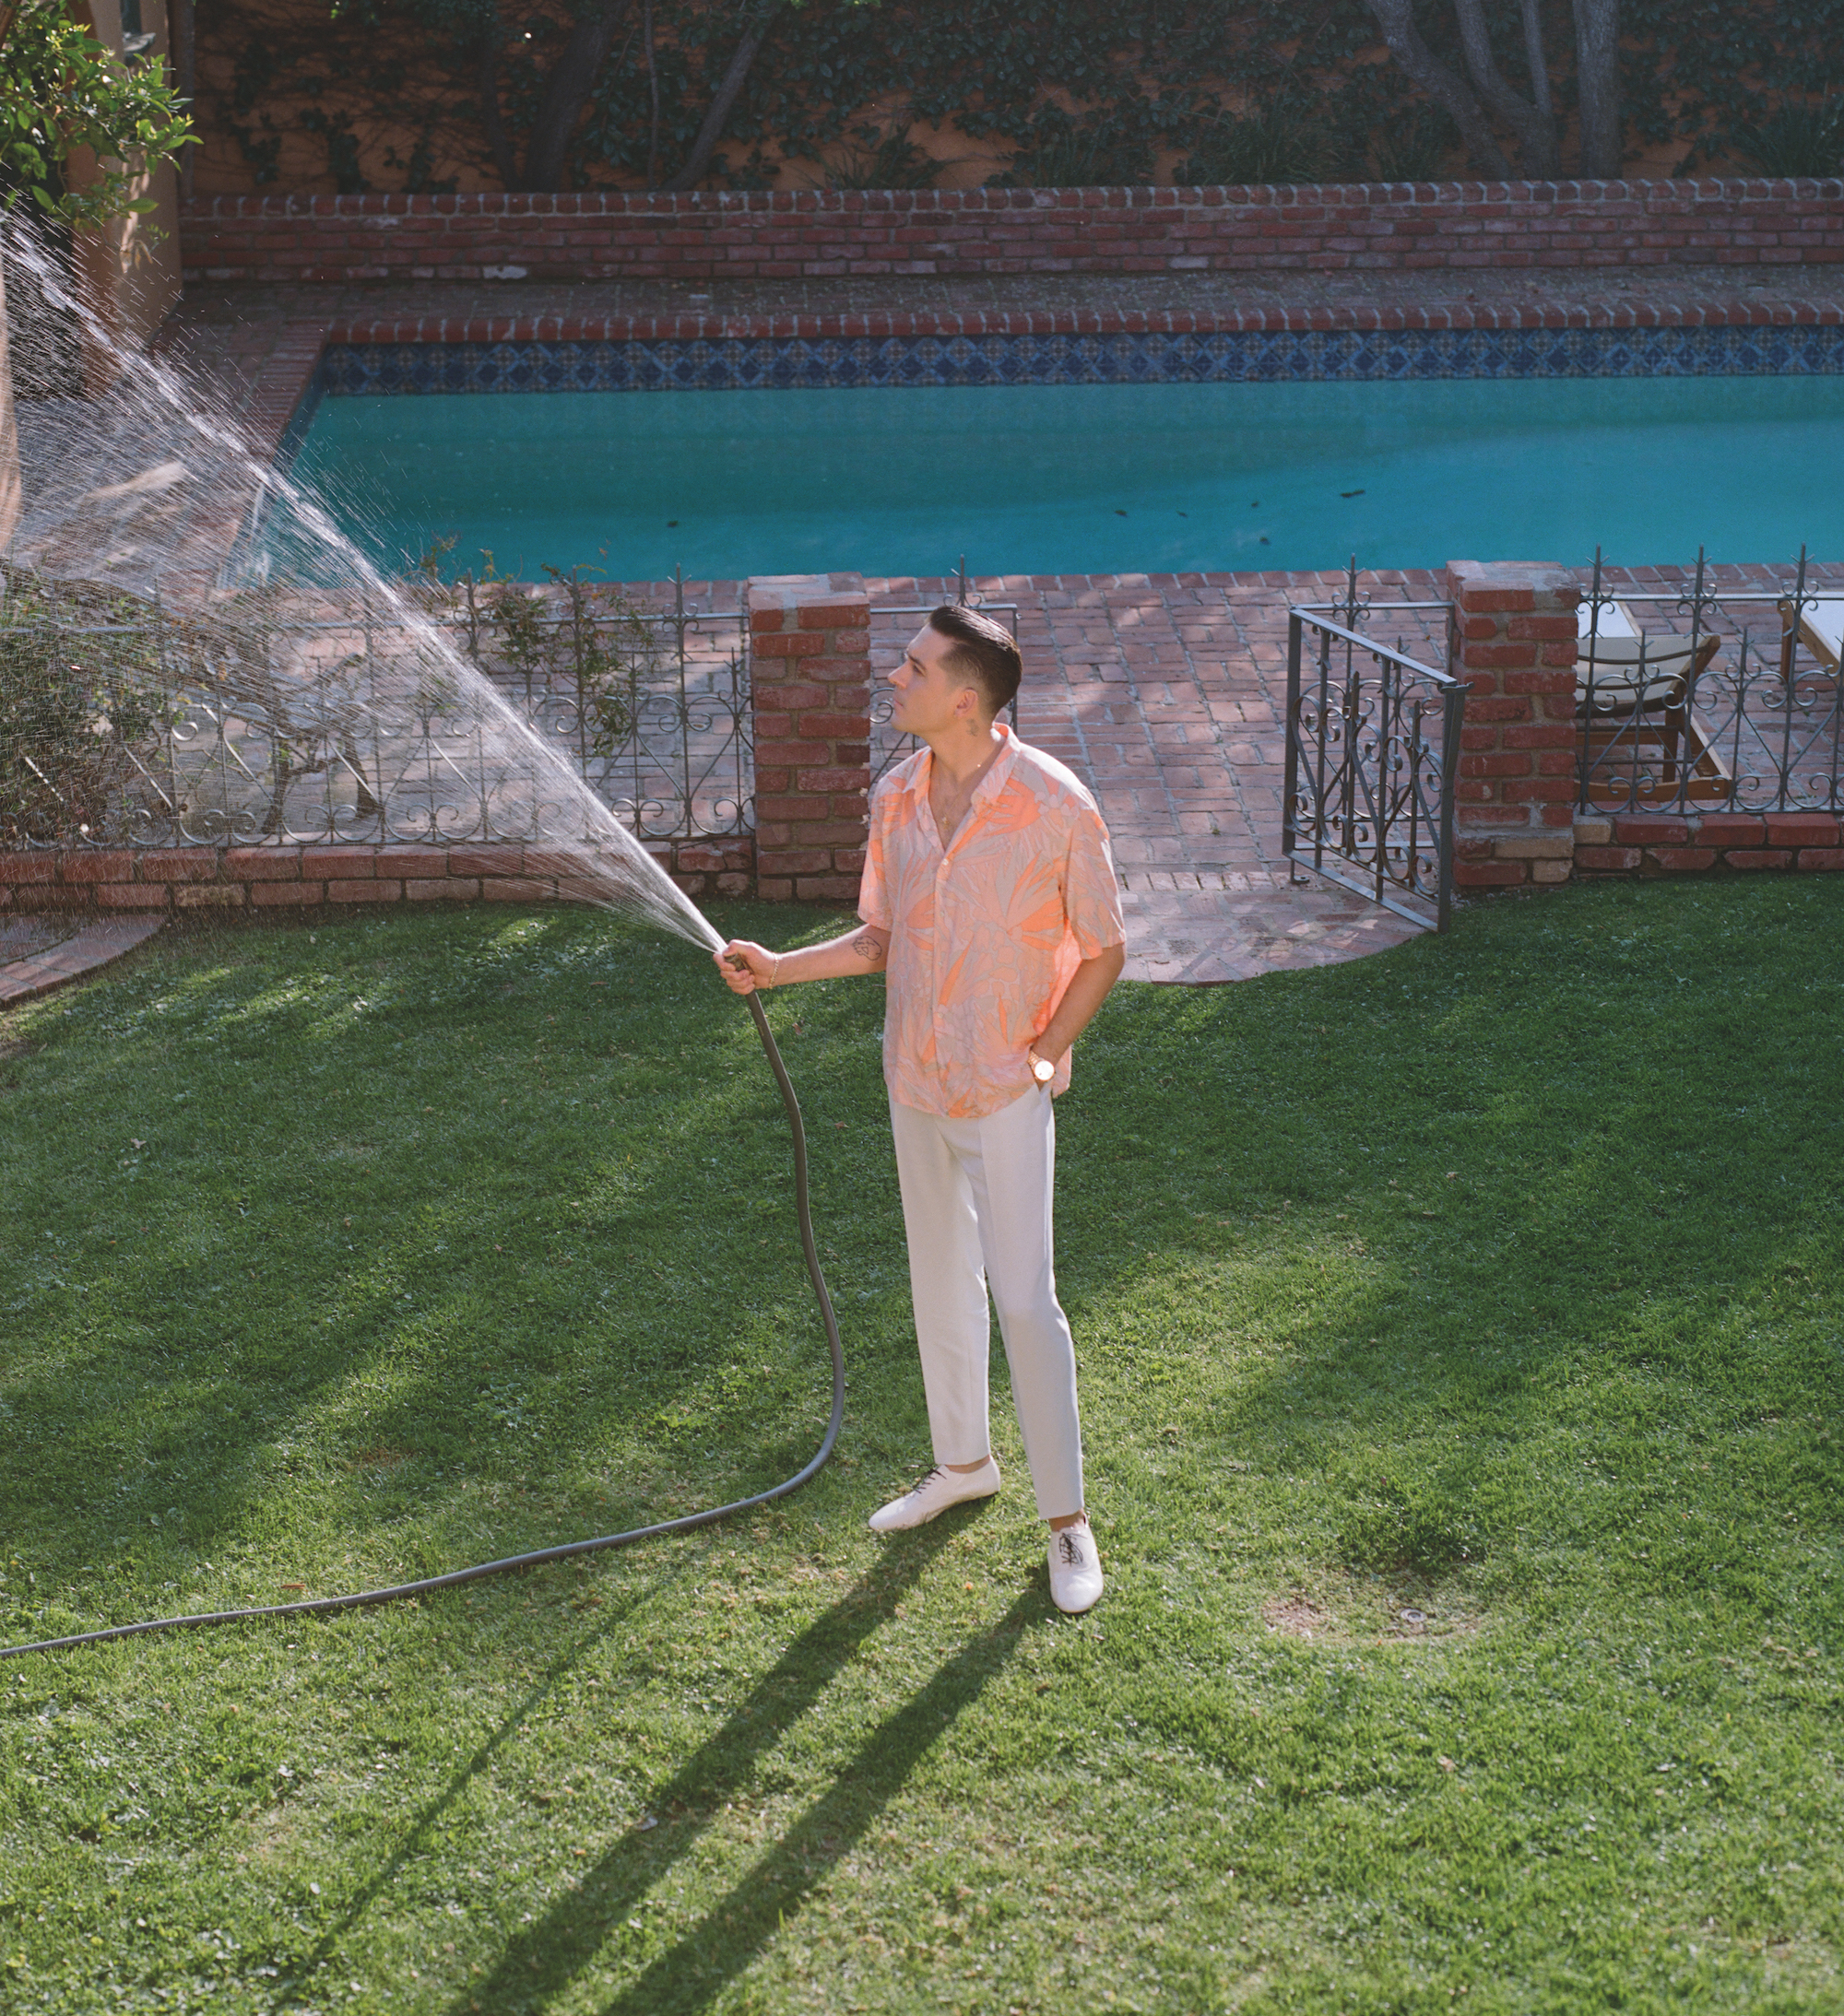 g Eazy in a pink shirt with a water hose.